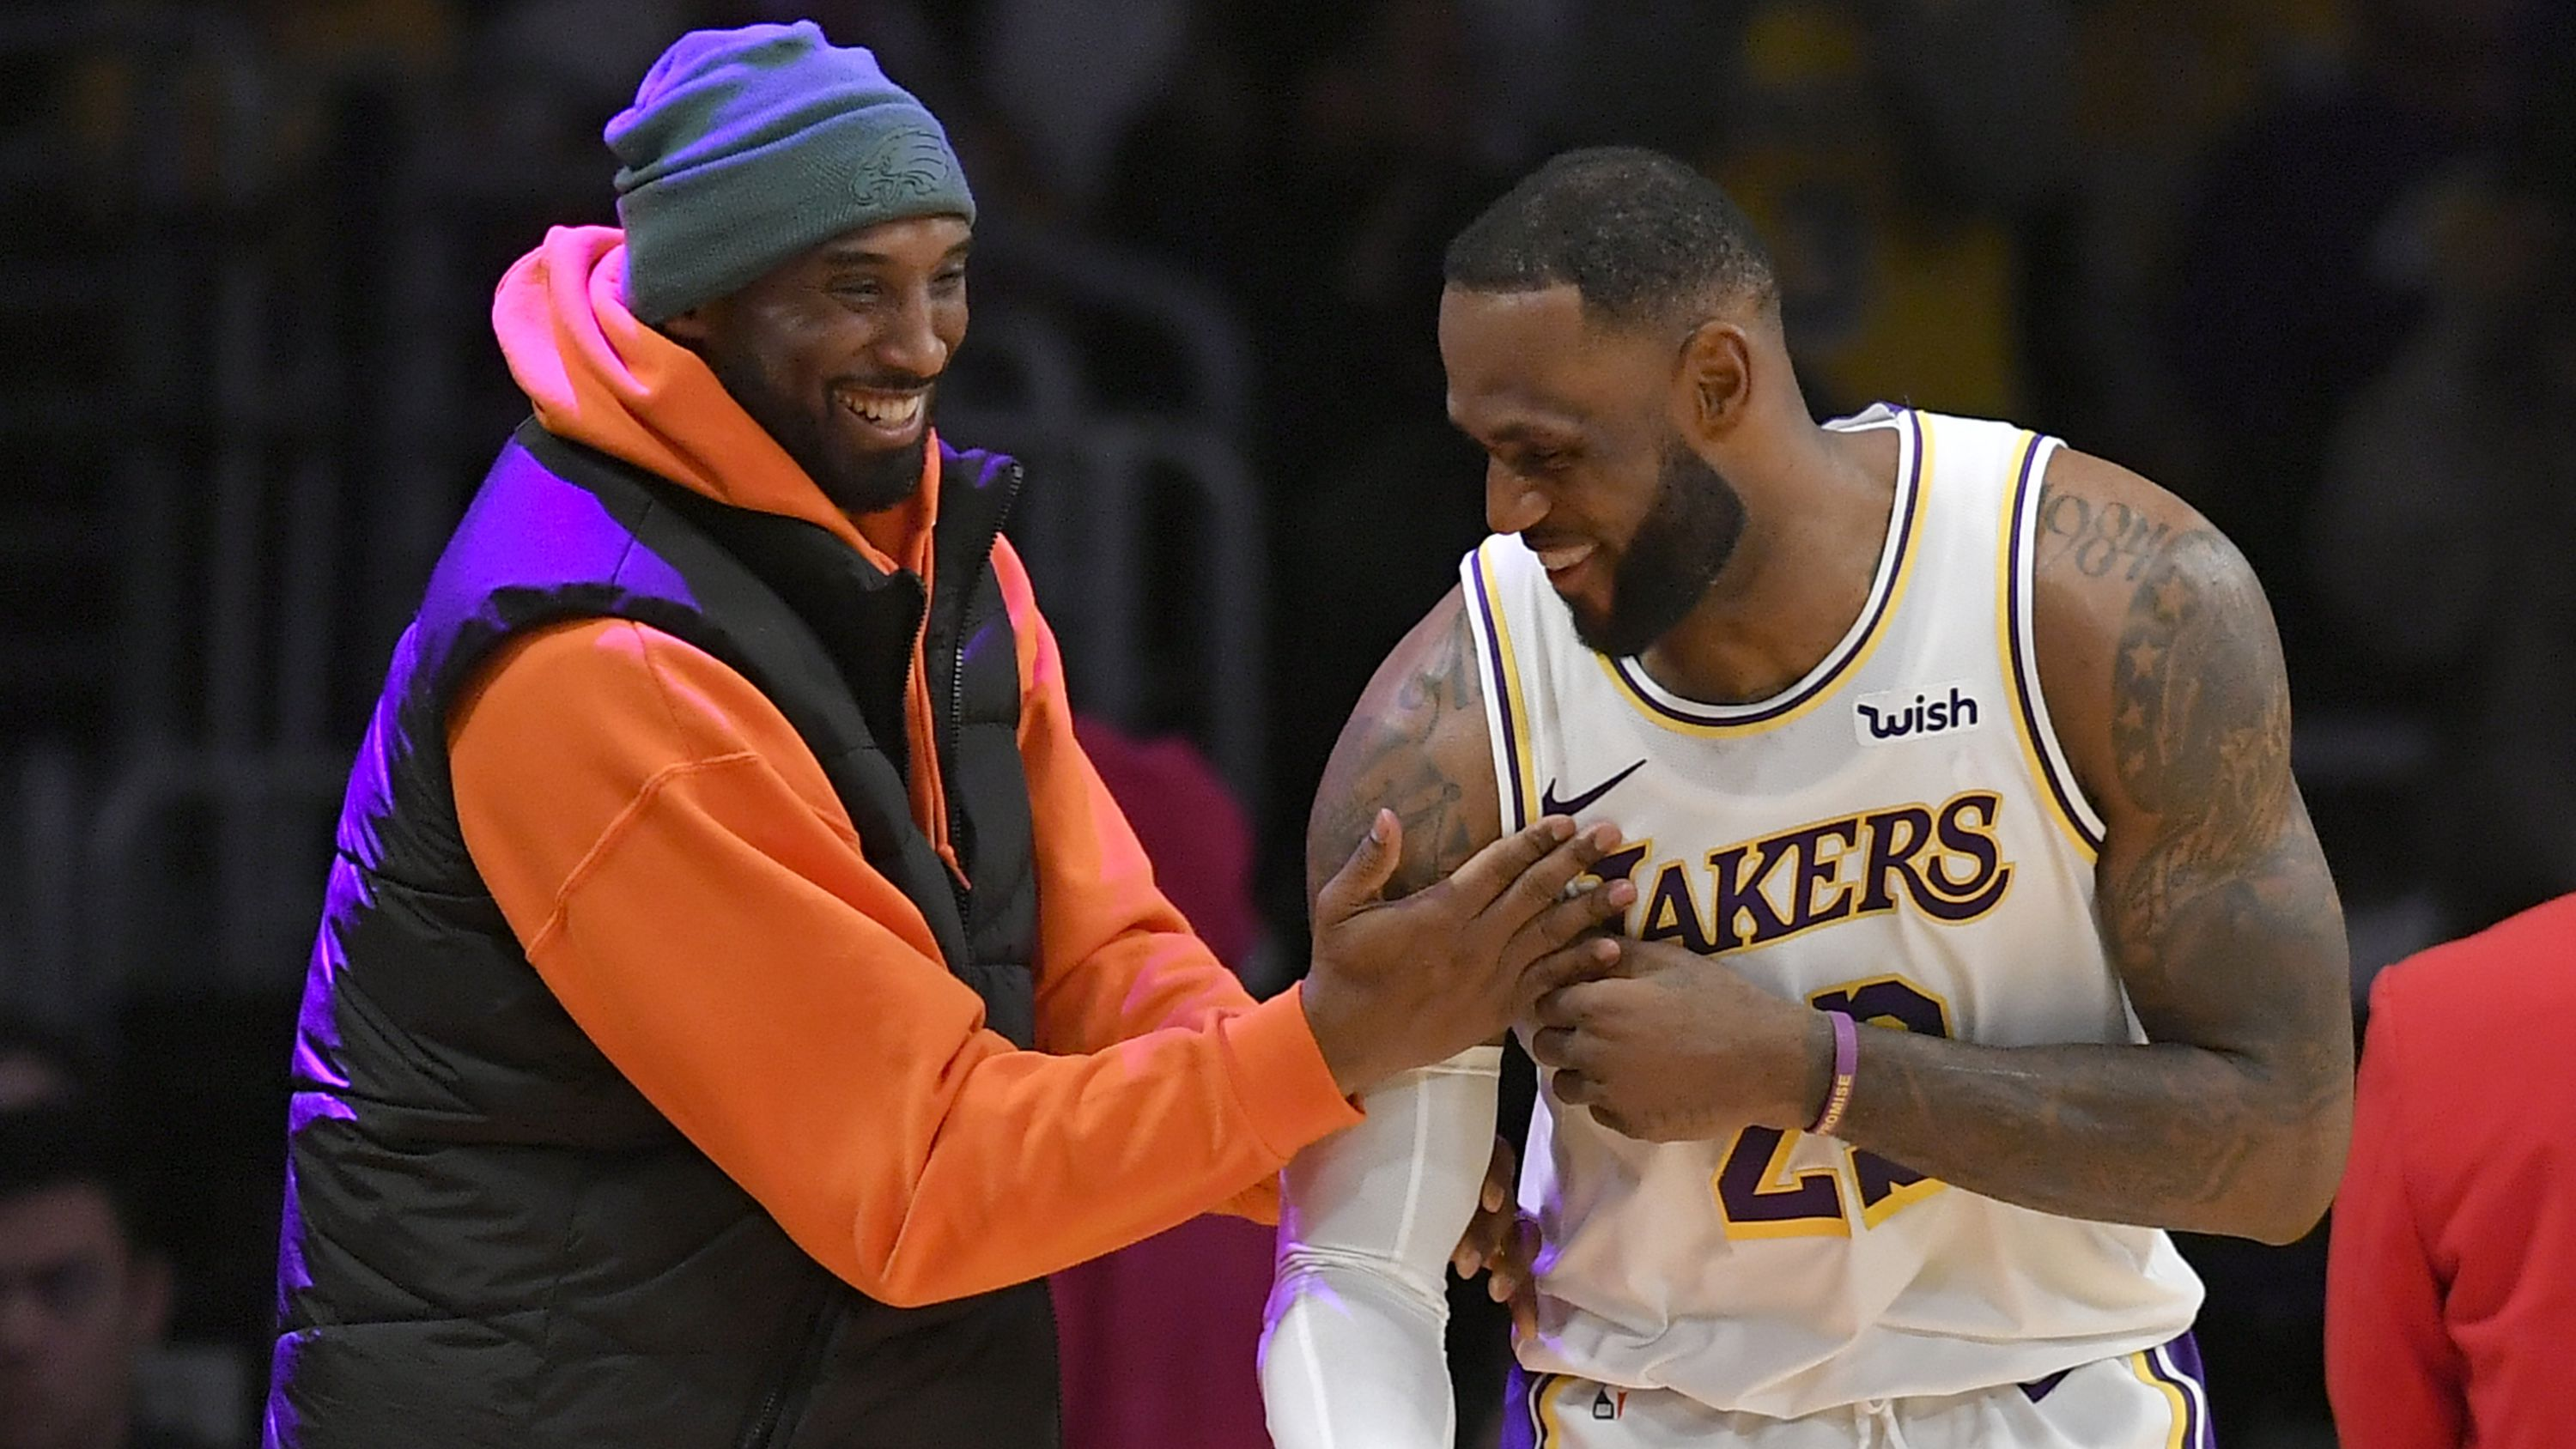 'I still have trouble with it': One year on, Lakers stars struggle to come to terms with Kobe Bryant's death